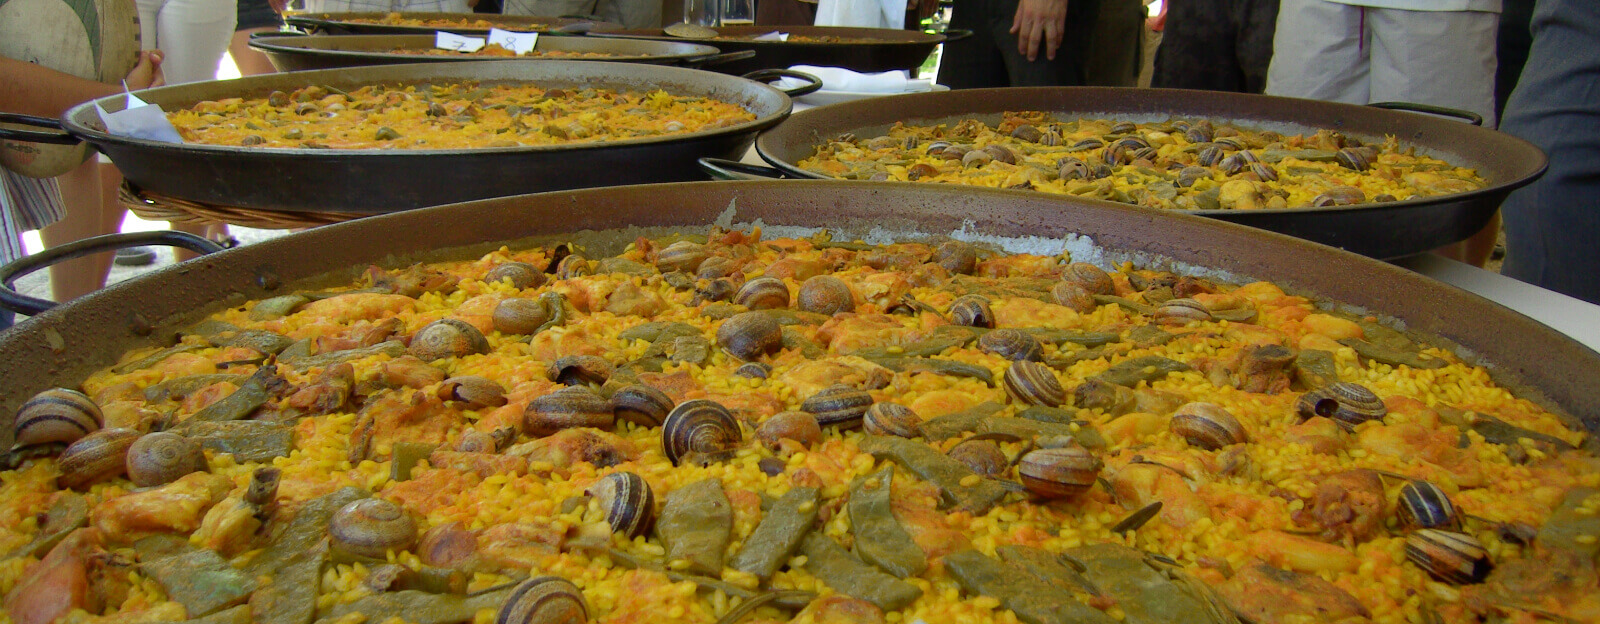 Paella picture